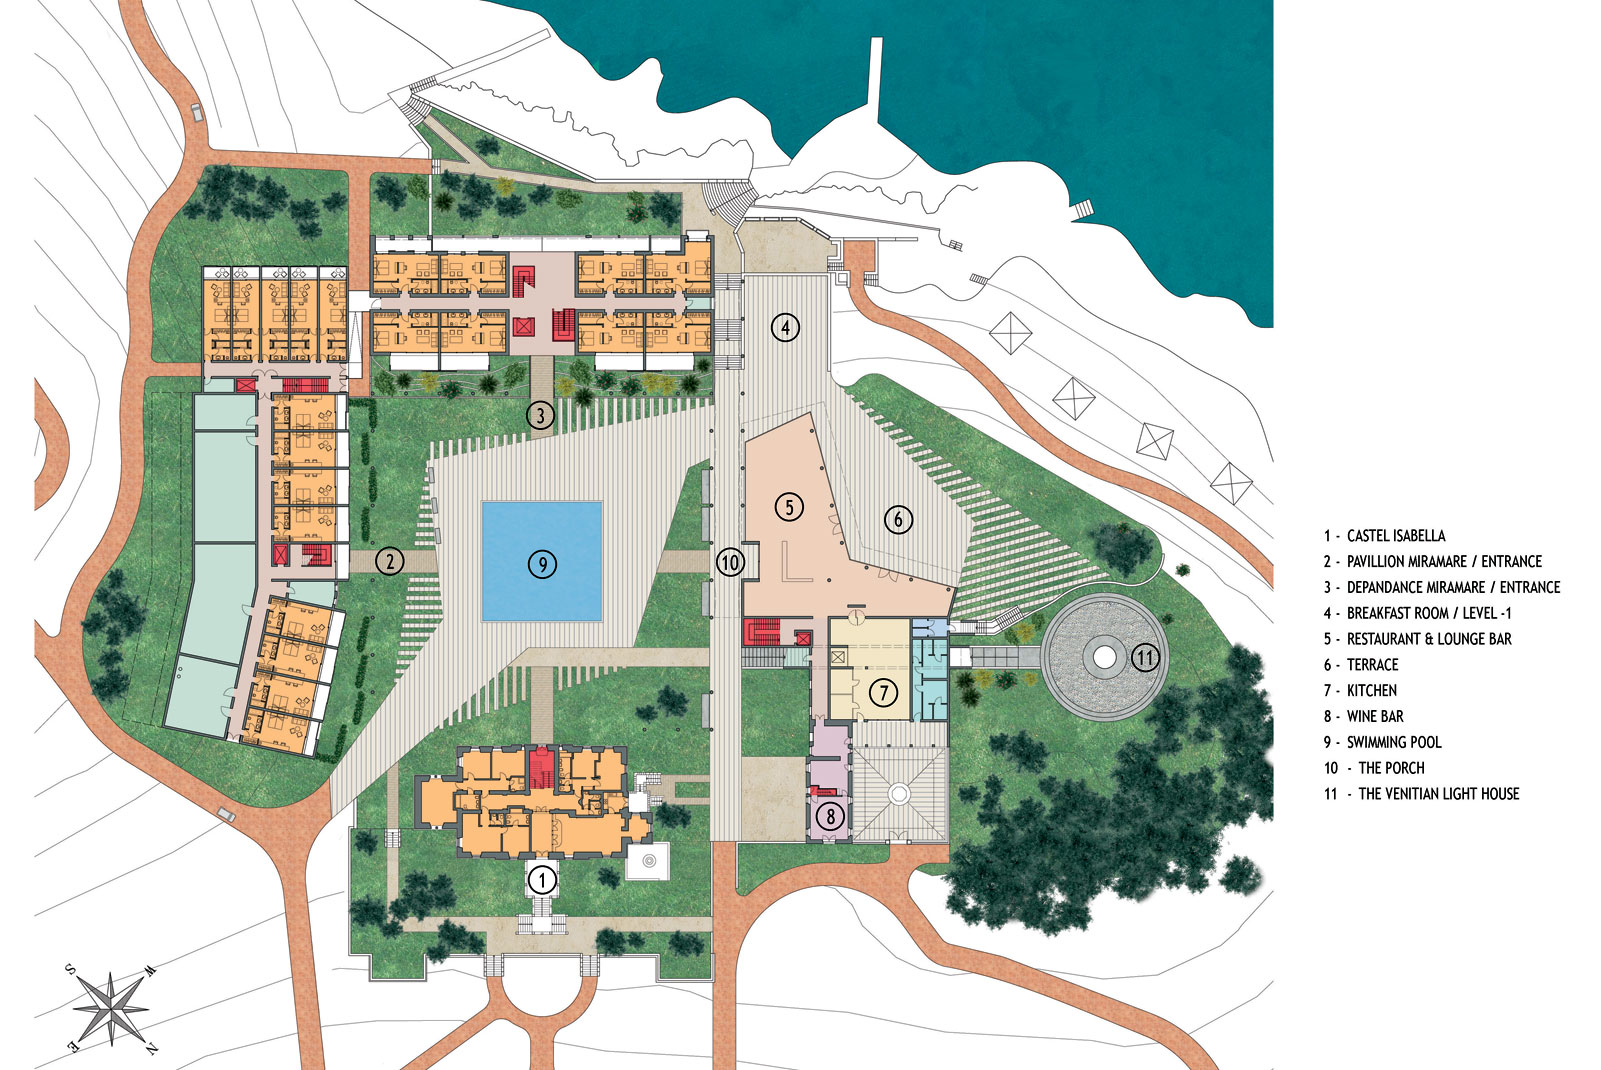 hotel miramare - san nikola island porec - general plan -refurbishment project